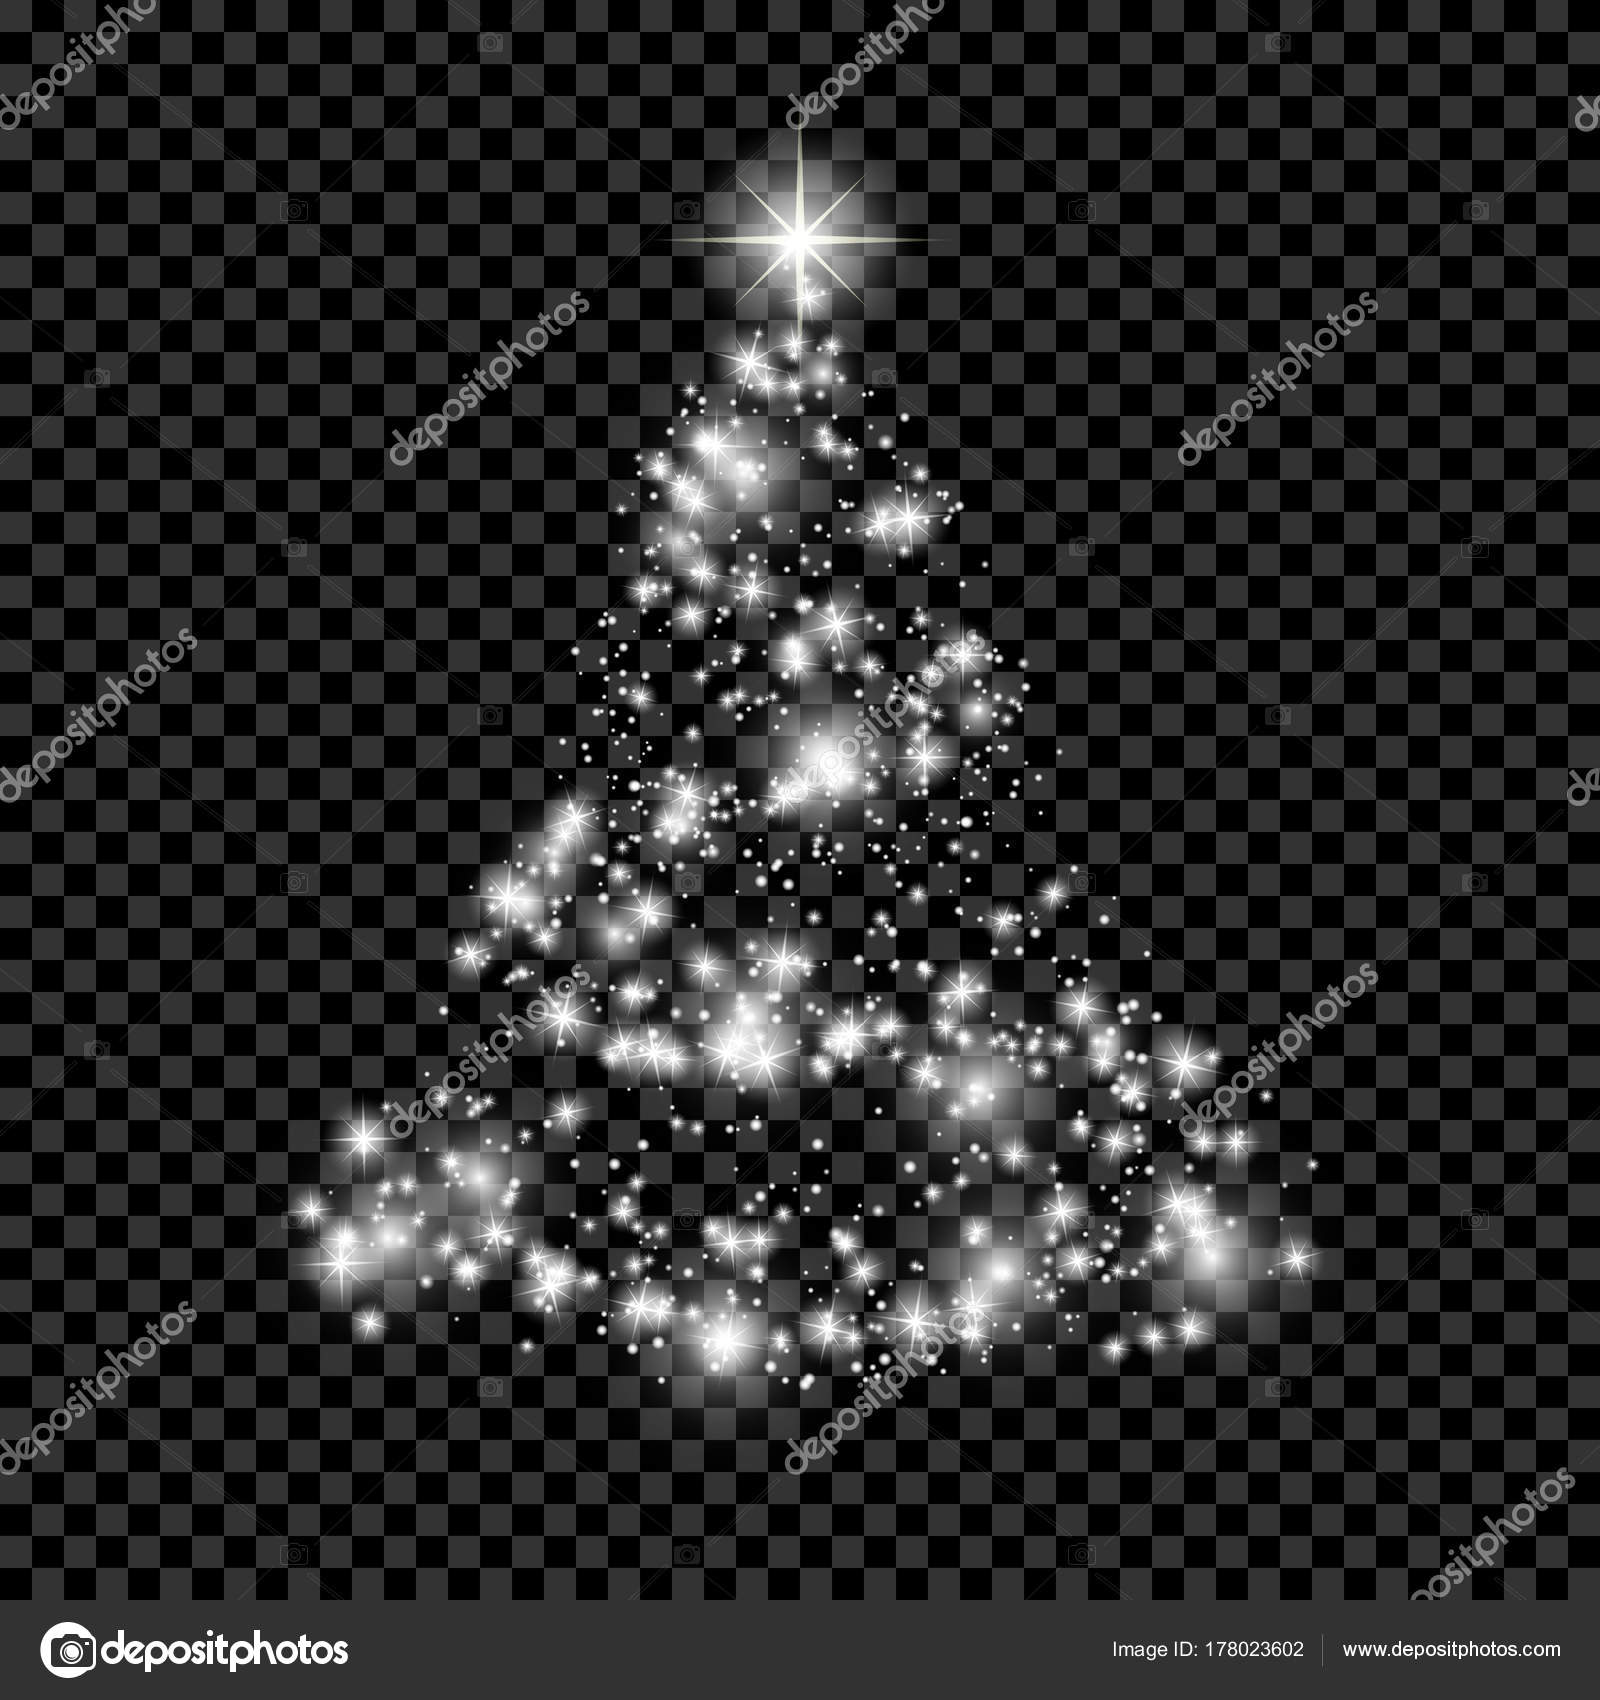 Christmas Tree Transparent Background.Background Tree Transparent Christmas Tree Transparent